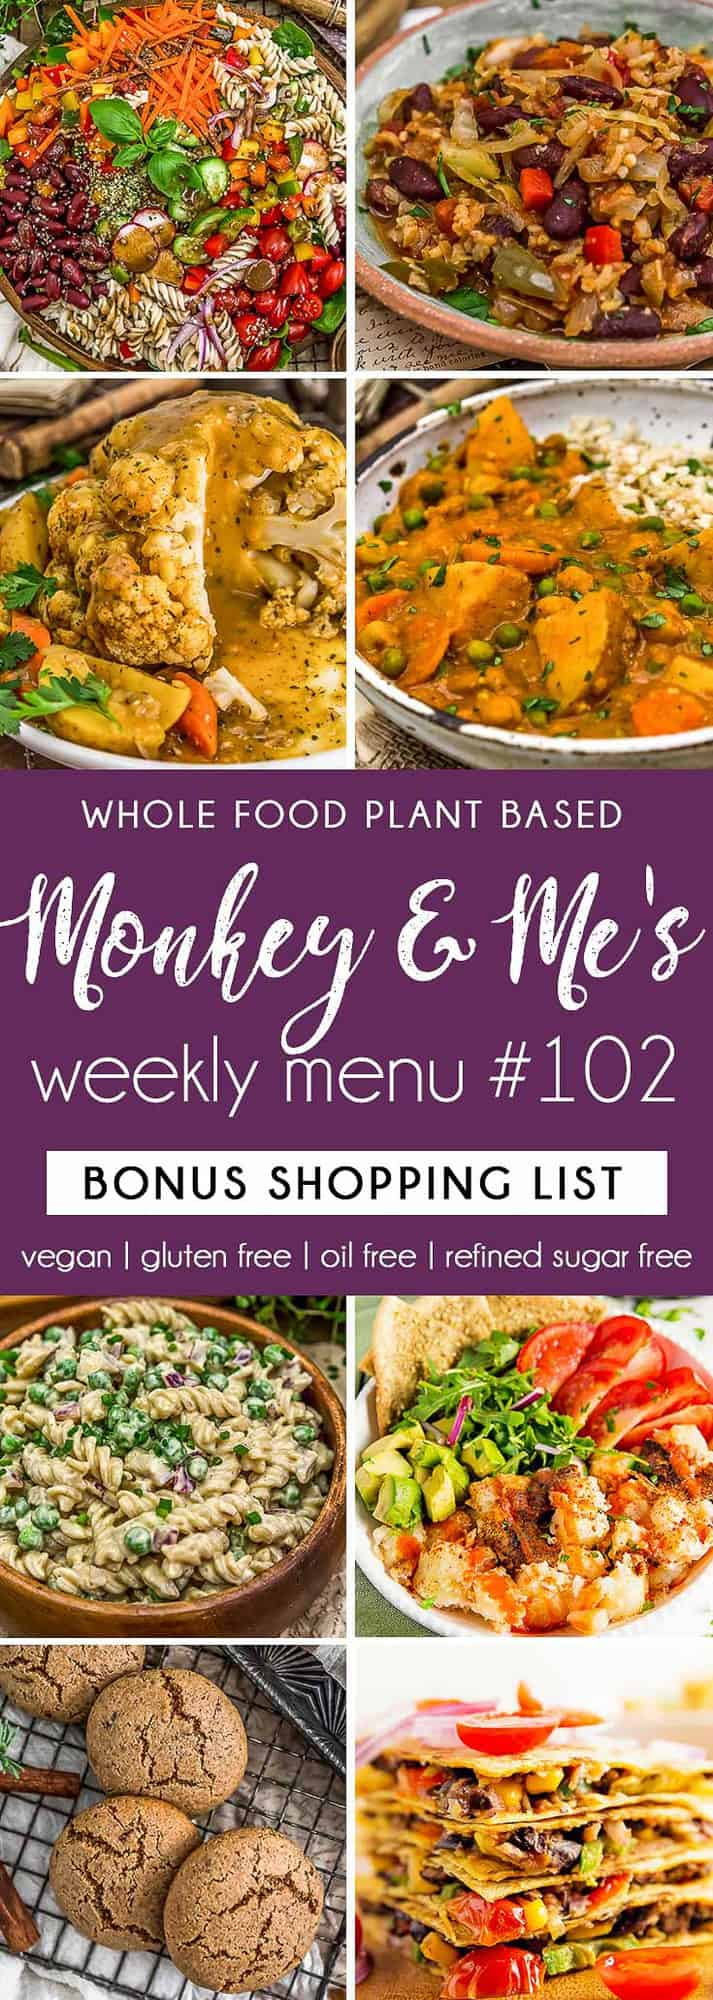 Monkey and Me's Menu 102 featuring 8 recipes